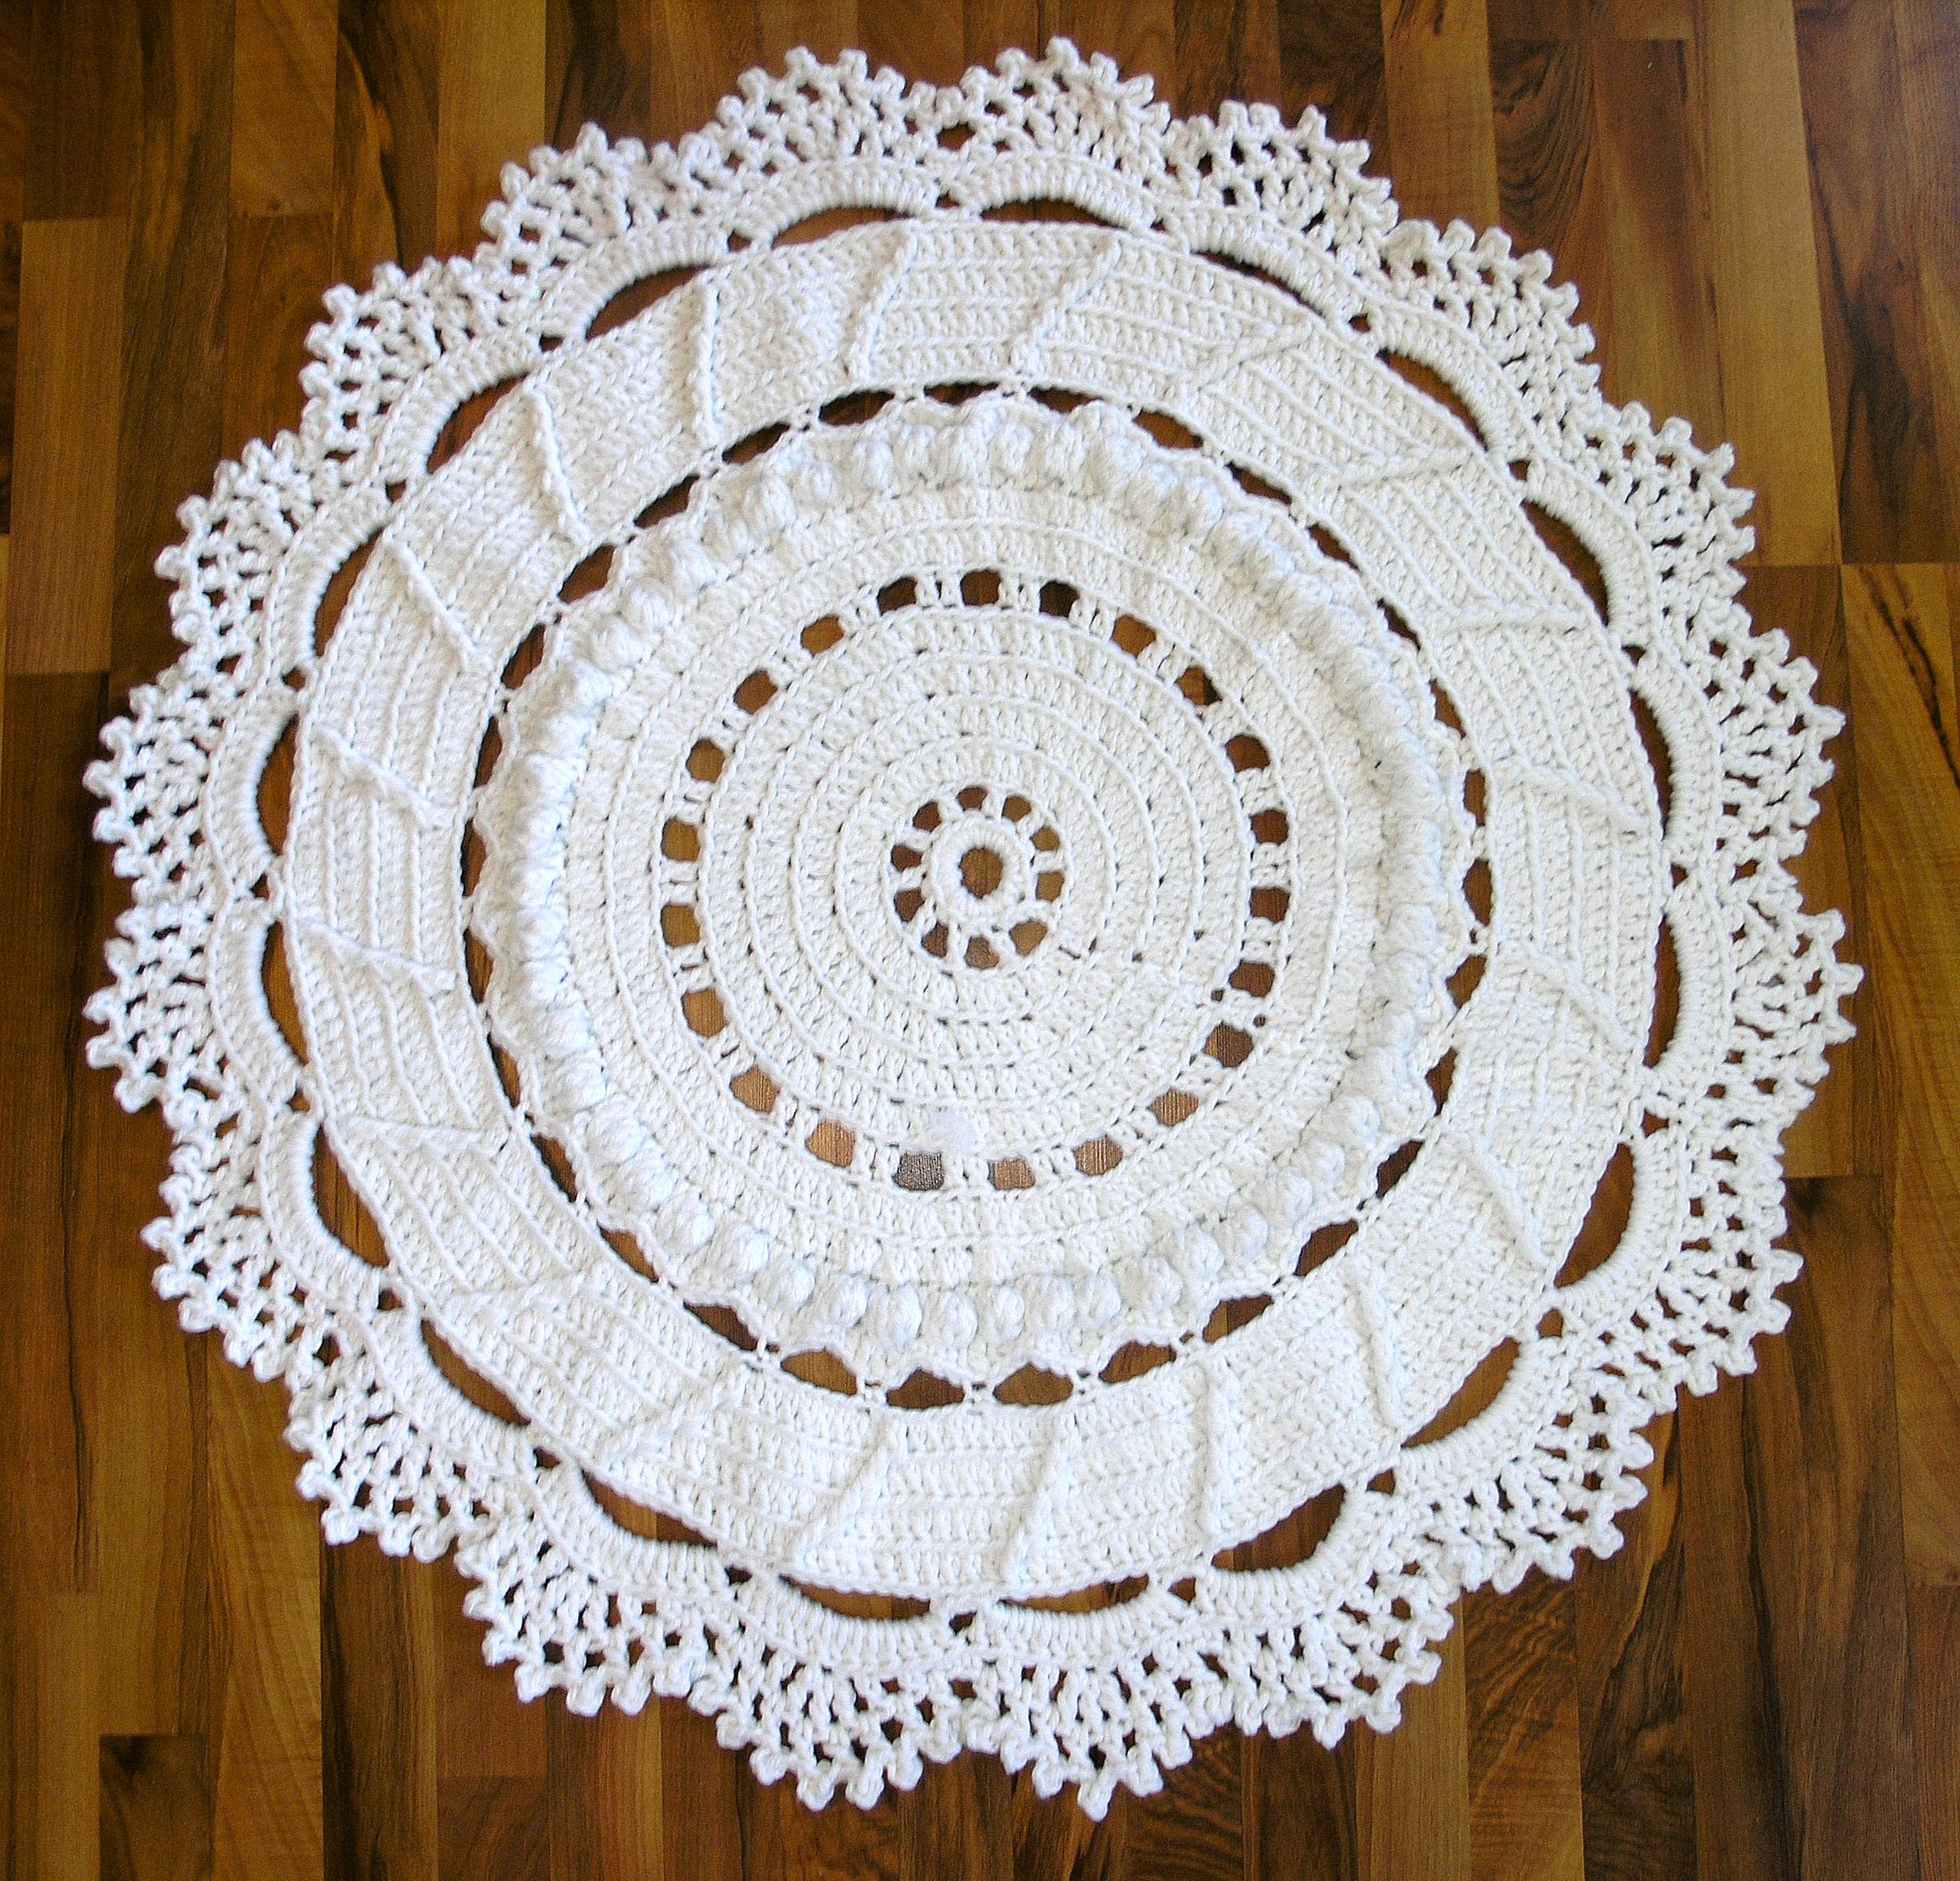 Crochet Rug Patterns Beautiful Dances with Wools Blog Archive A Giant Crochet Doily Of Amazing 41 Images Crochet Rug Patterns